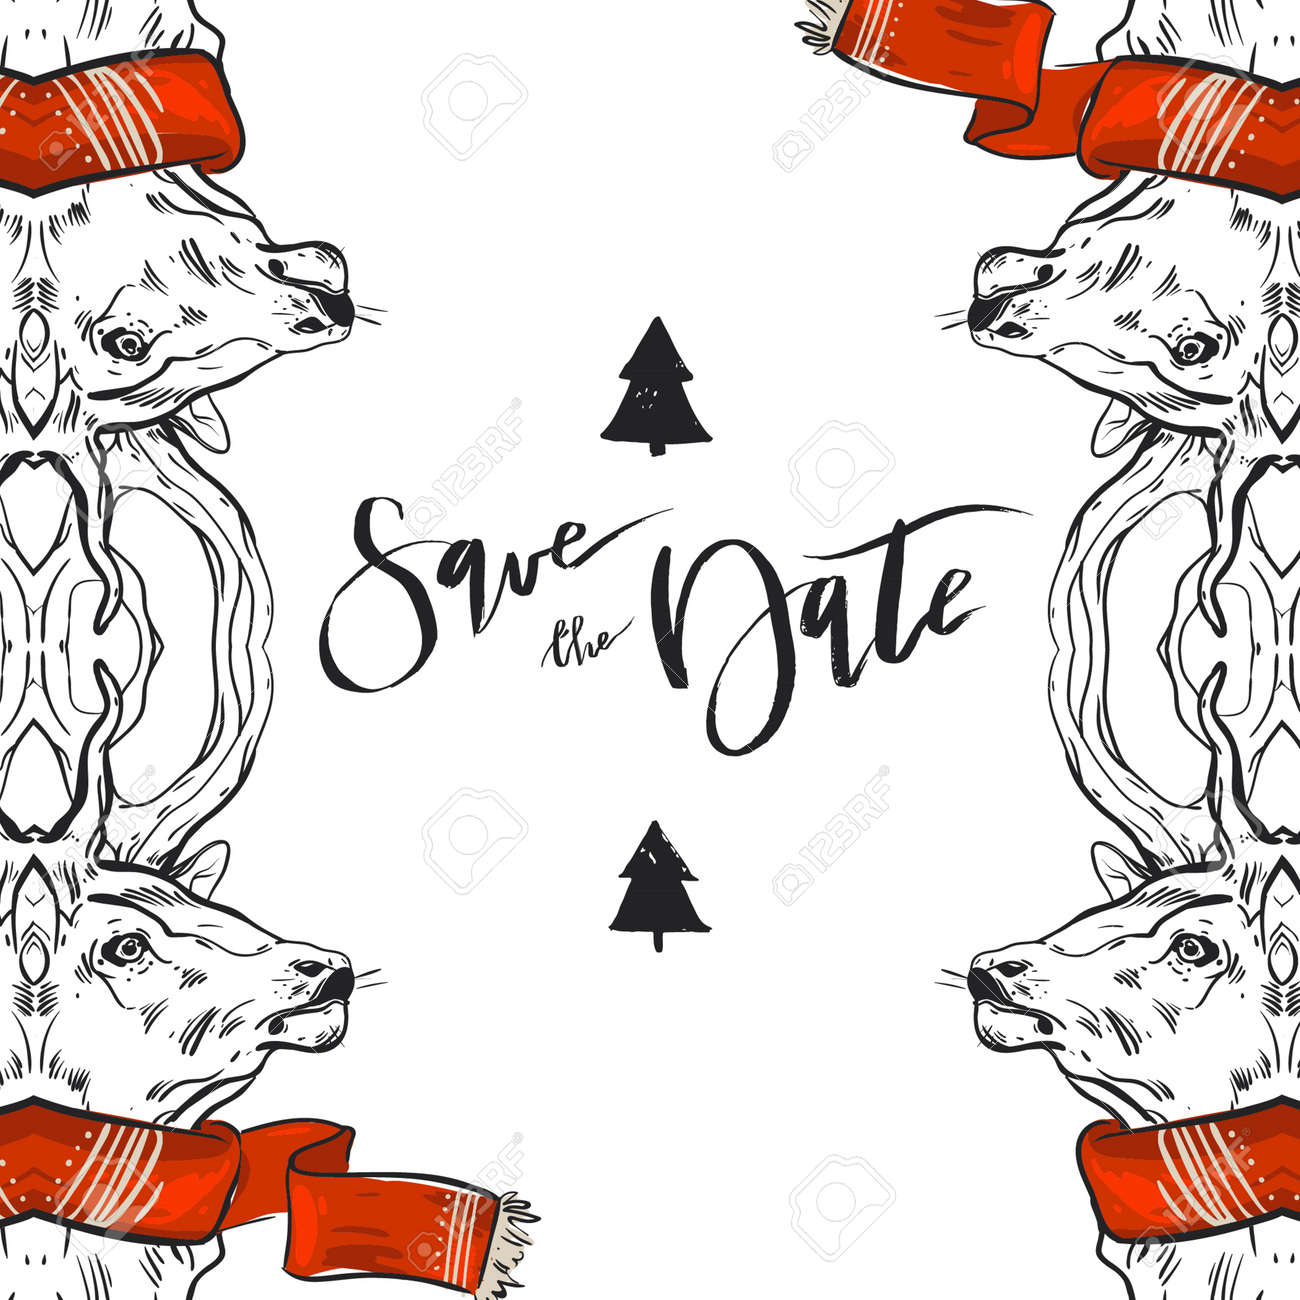 Christmas Save The Date.Hand Drawn Vector Graphic Merry Christmas Save The Date Greeting